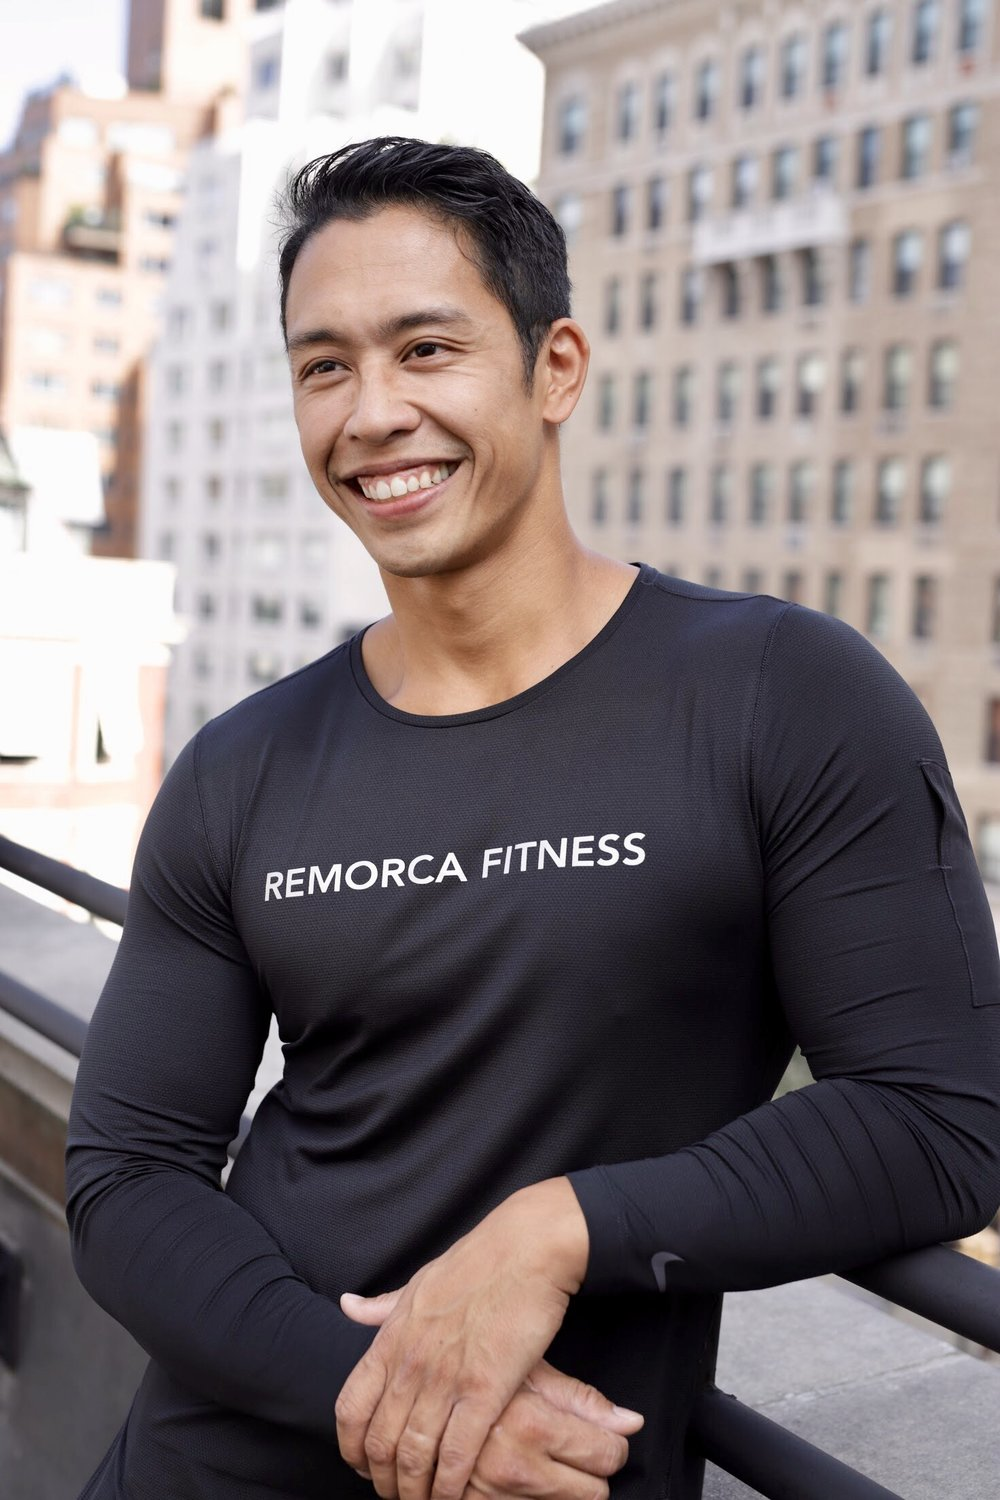 DENNIS - OWNER AT REMORCA FITNESS GROUPCERTIFICATIONS: NASM CPT, ACSM HEALTH FITNESS INSTRUCTOR, CROSSFIT LVL 1, WKC KETTLEBELL COACH, ACE CERTIFIED PERSONAL TRAINERFITNESS HOBBIES: :PUTTING TOGETHER GYM EQUIPMENT, REARRANGING GYMS AND RIDING MY BIKENON-FITNESS THING ABOUT ME: